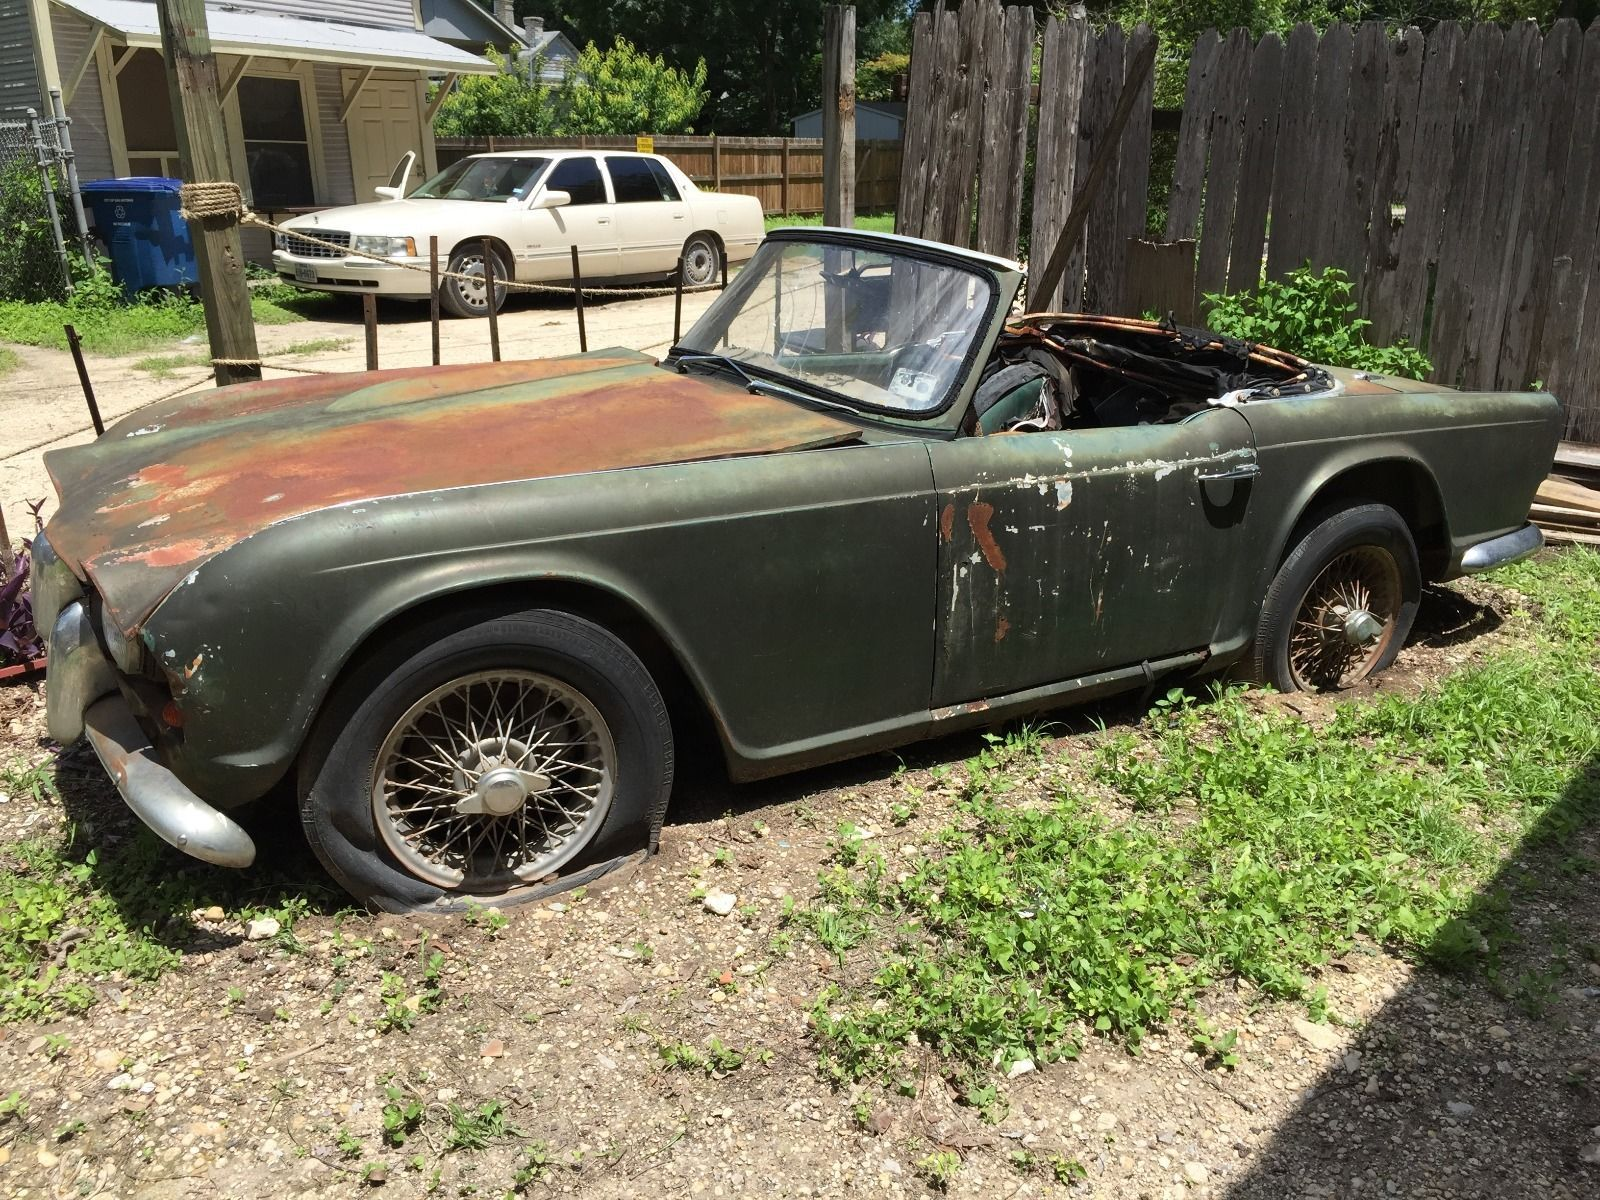 1961 Triumph TR4 Car for Parts Perfect Restoration Source | eBay ...